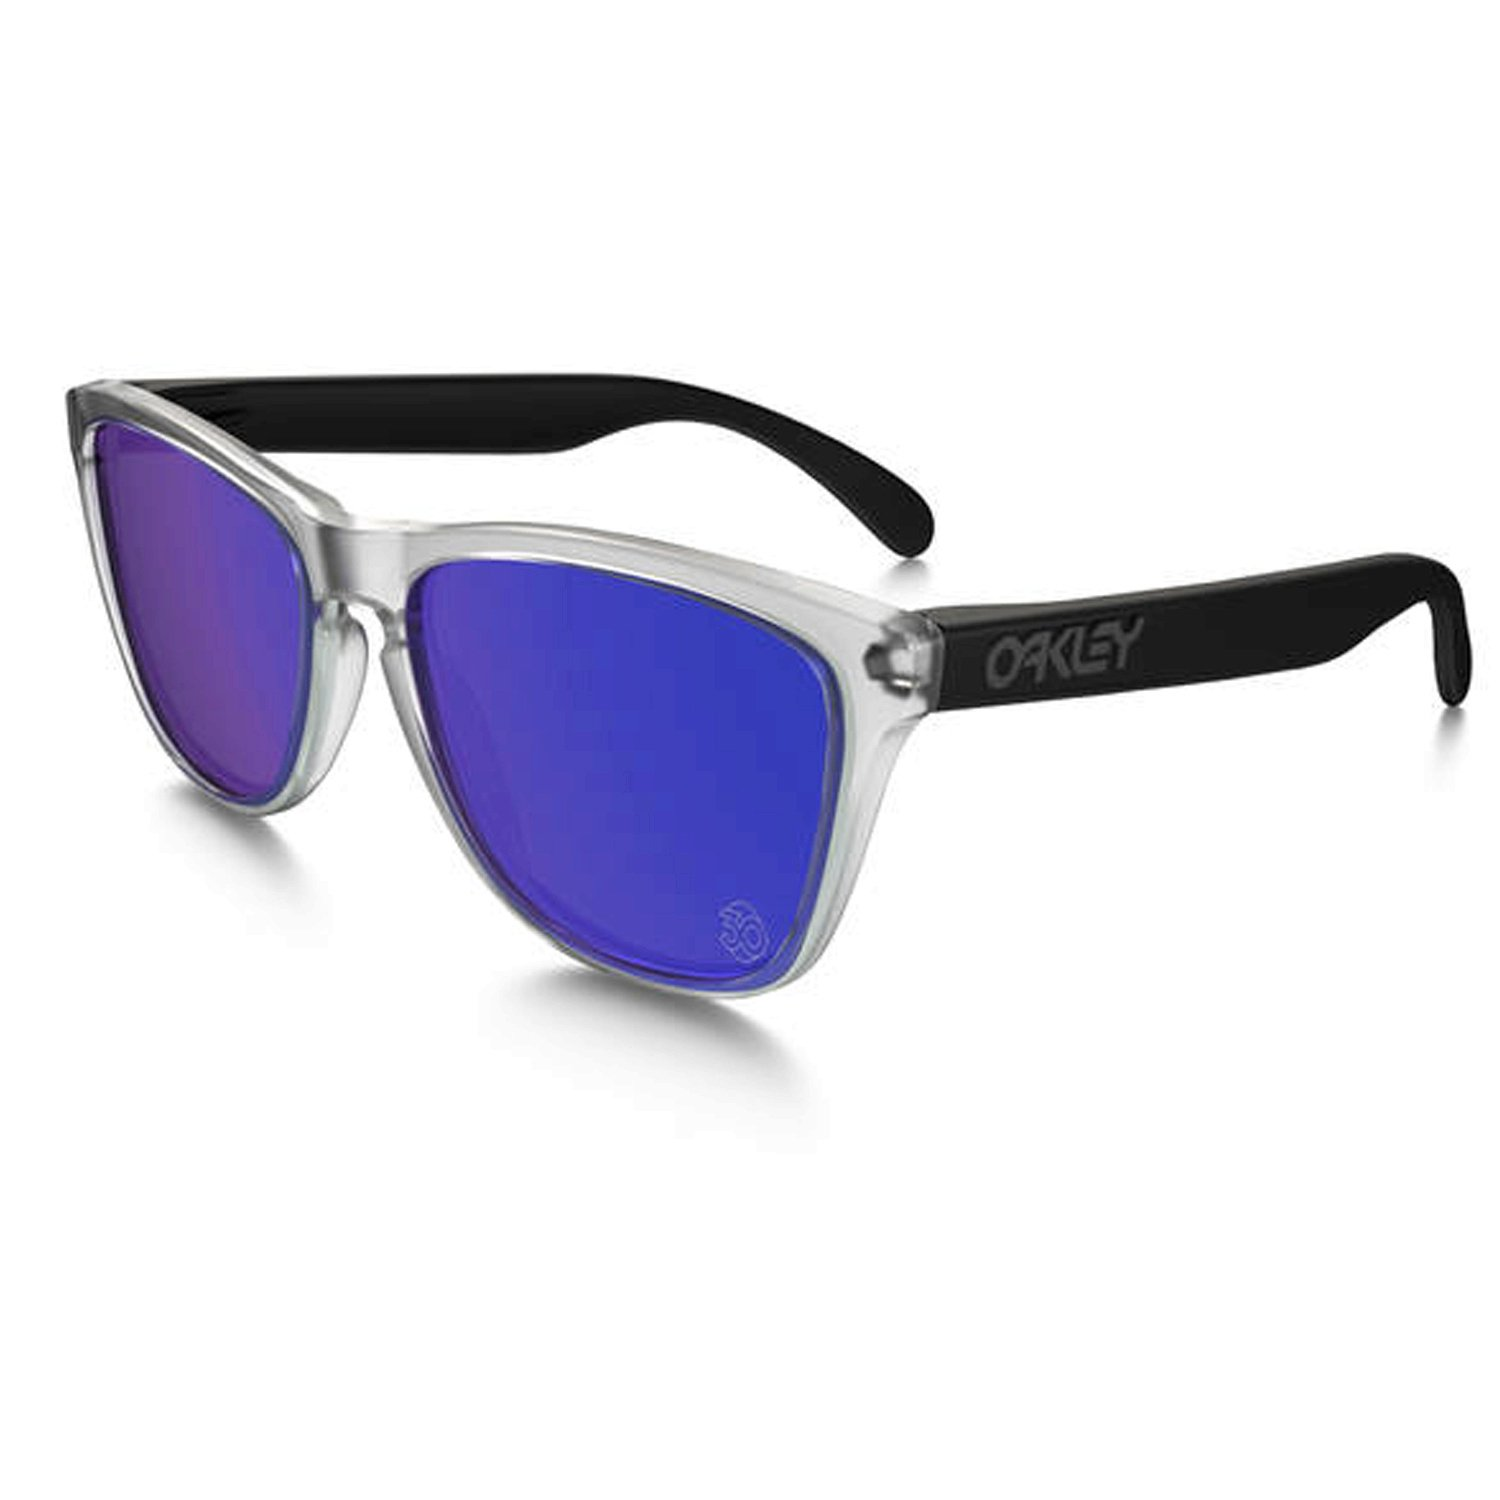 oakley iridium  clear/violet iridium